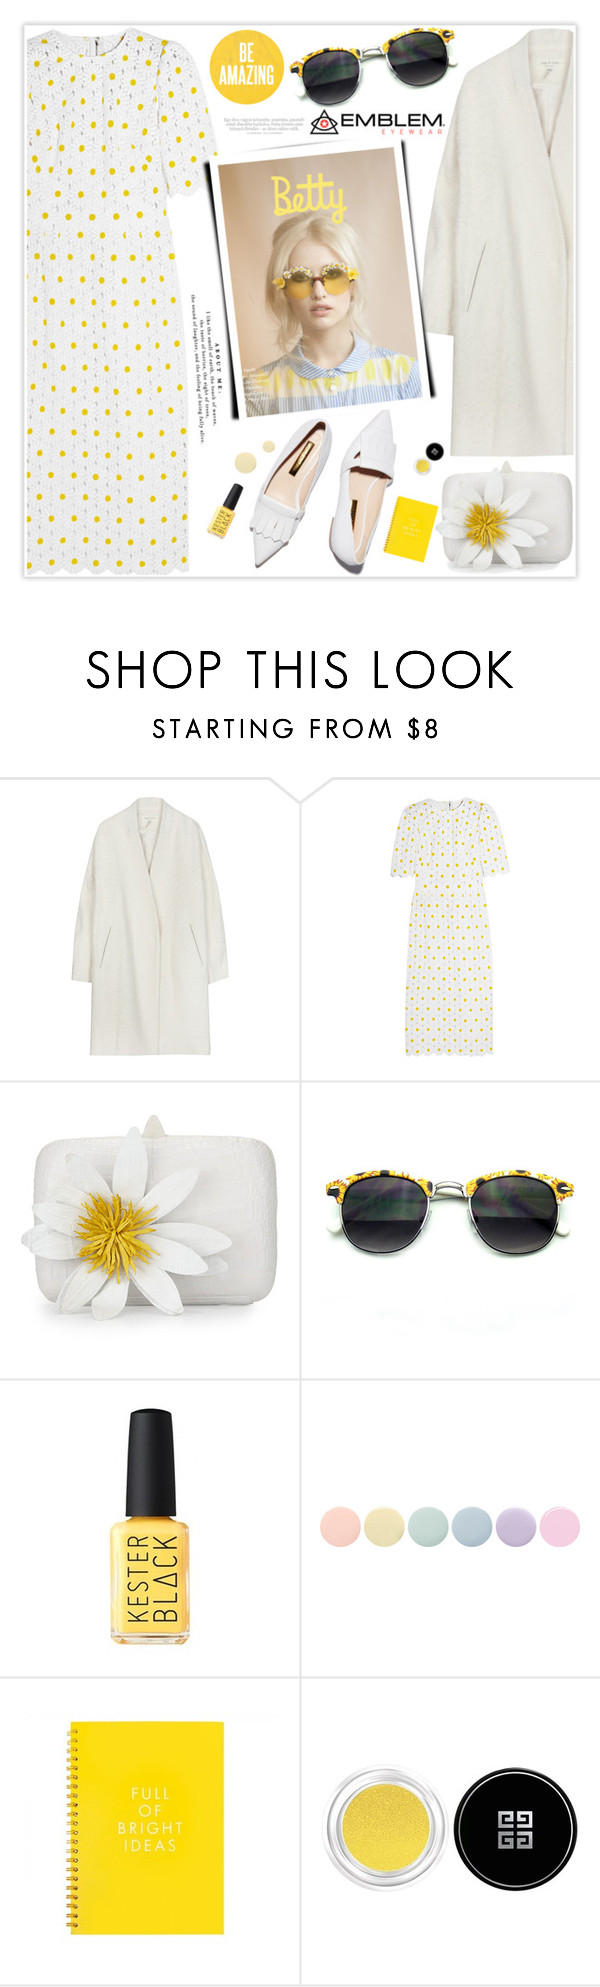 """No 328:Spring with Emblem Eyewear"" by lovepastel ❤ liked on Polyvore featuring Dolce&Gabbana, Rupert Sanderson, Nancy Gonzalez, Deborah Lippmann, Givenchy and Vince"